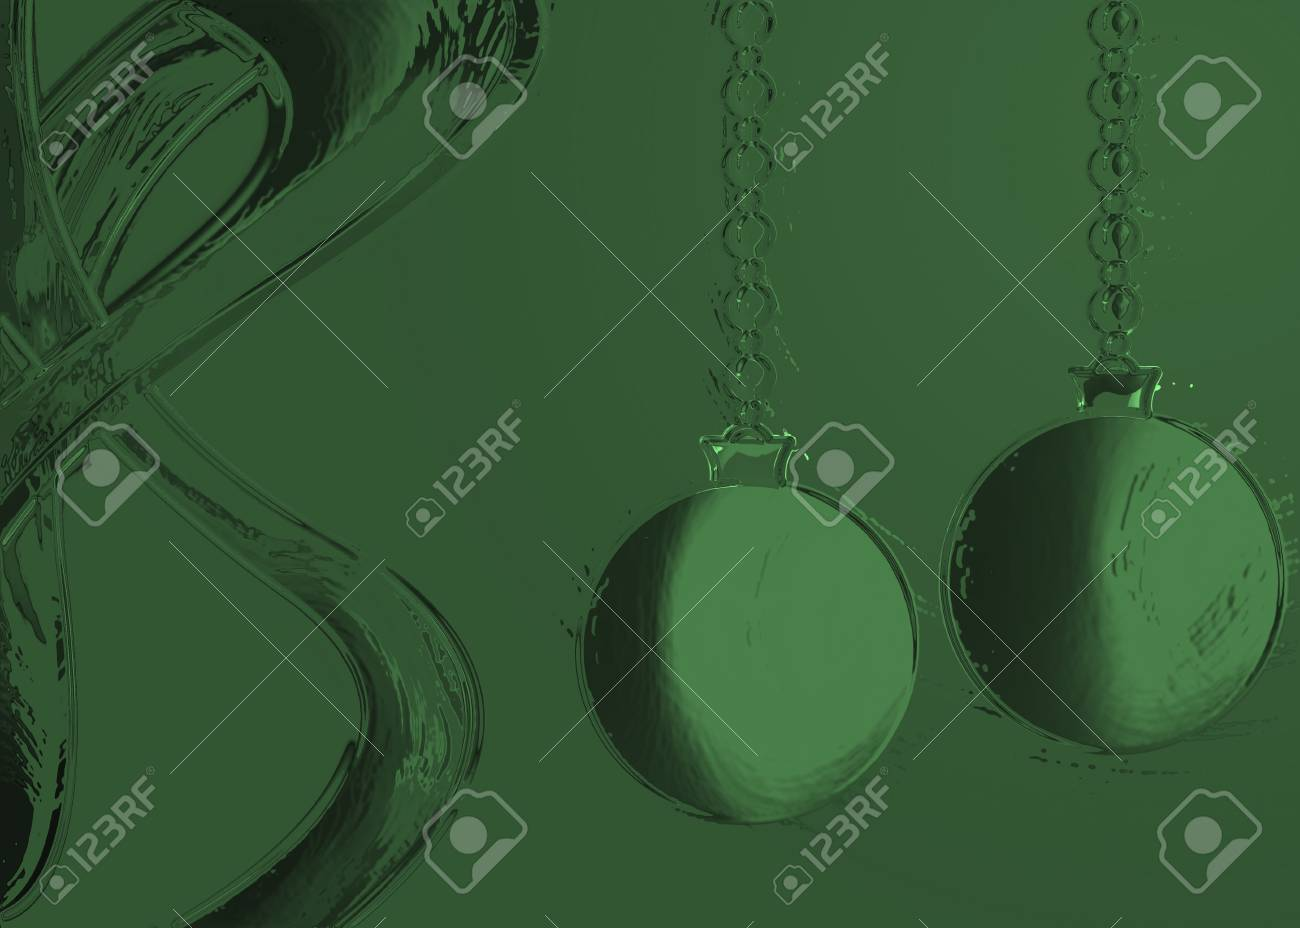 Abstract retro Christmas background illustration in green Stock Photo - 14110027